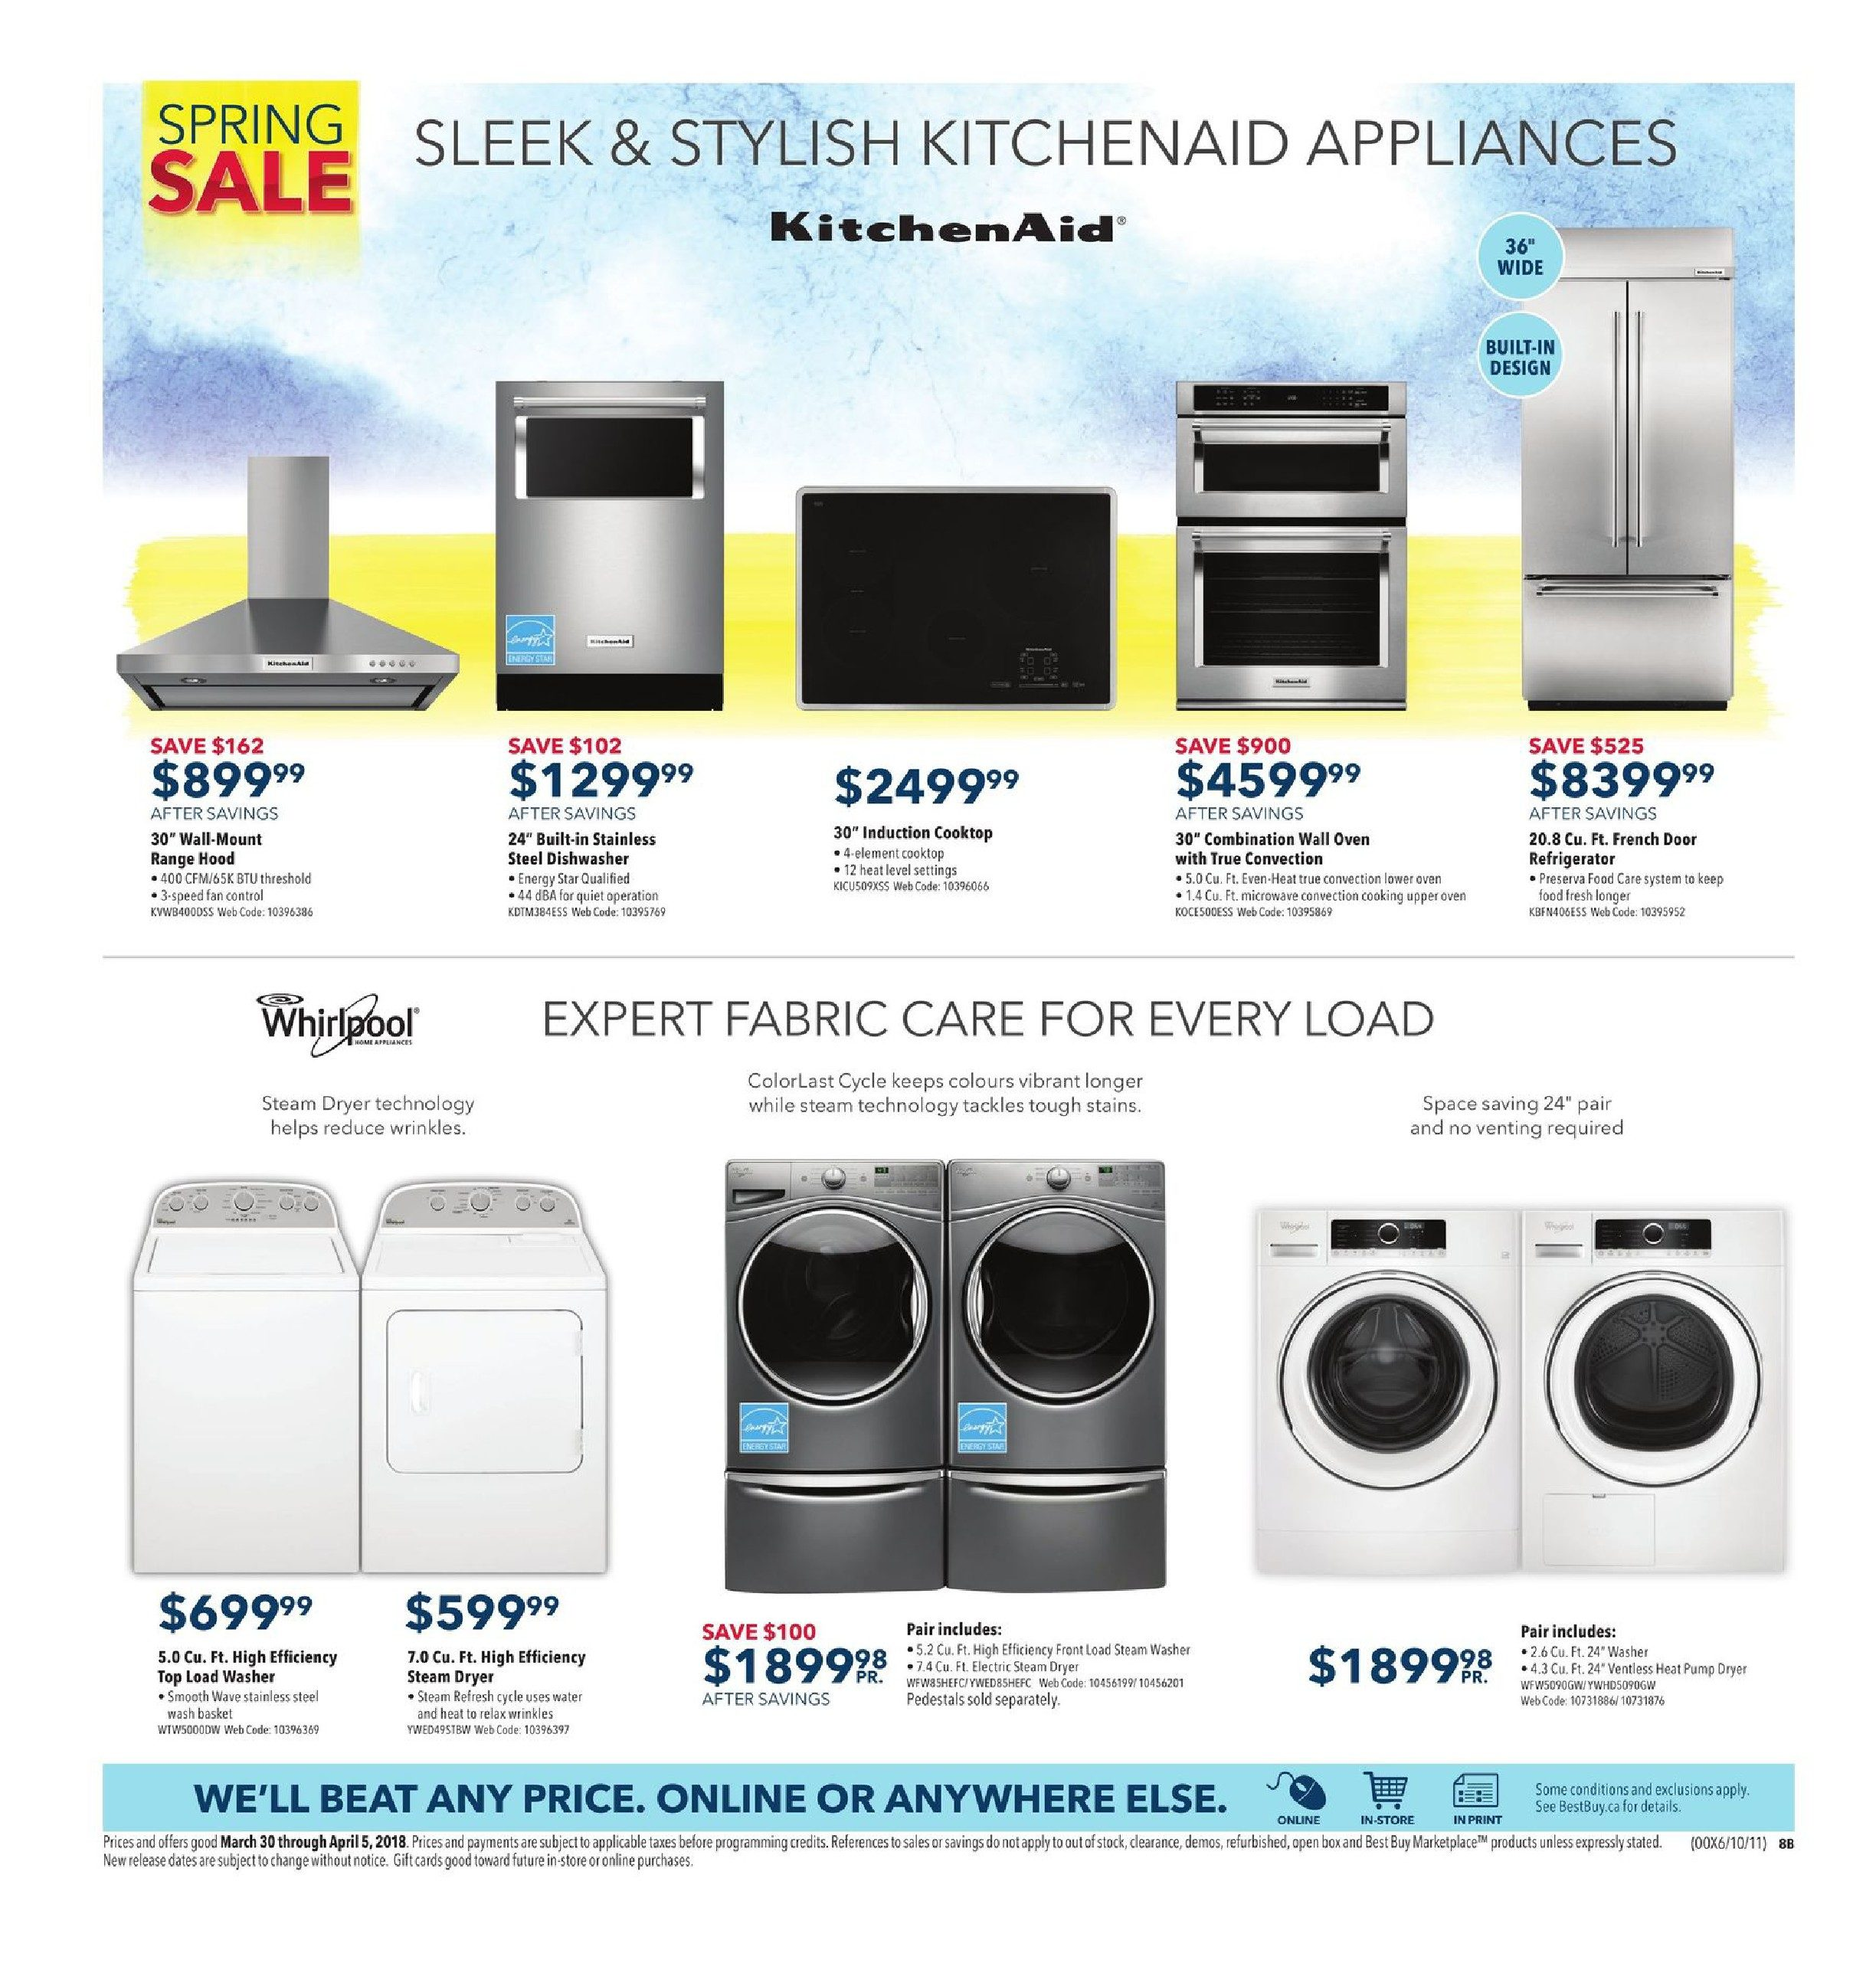 Best Buy Weekly Flyer Spring Sale Mar 30 Apr 5 My Dryer Maytaghas A Three Wire Electric Cord The Wires